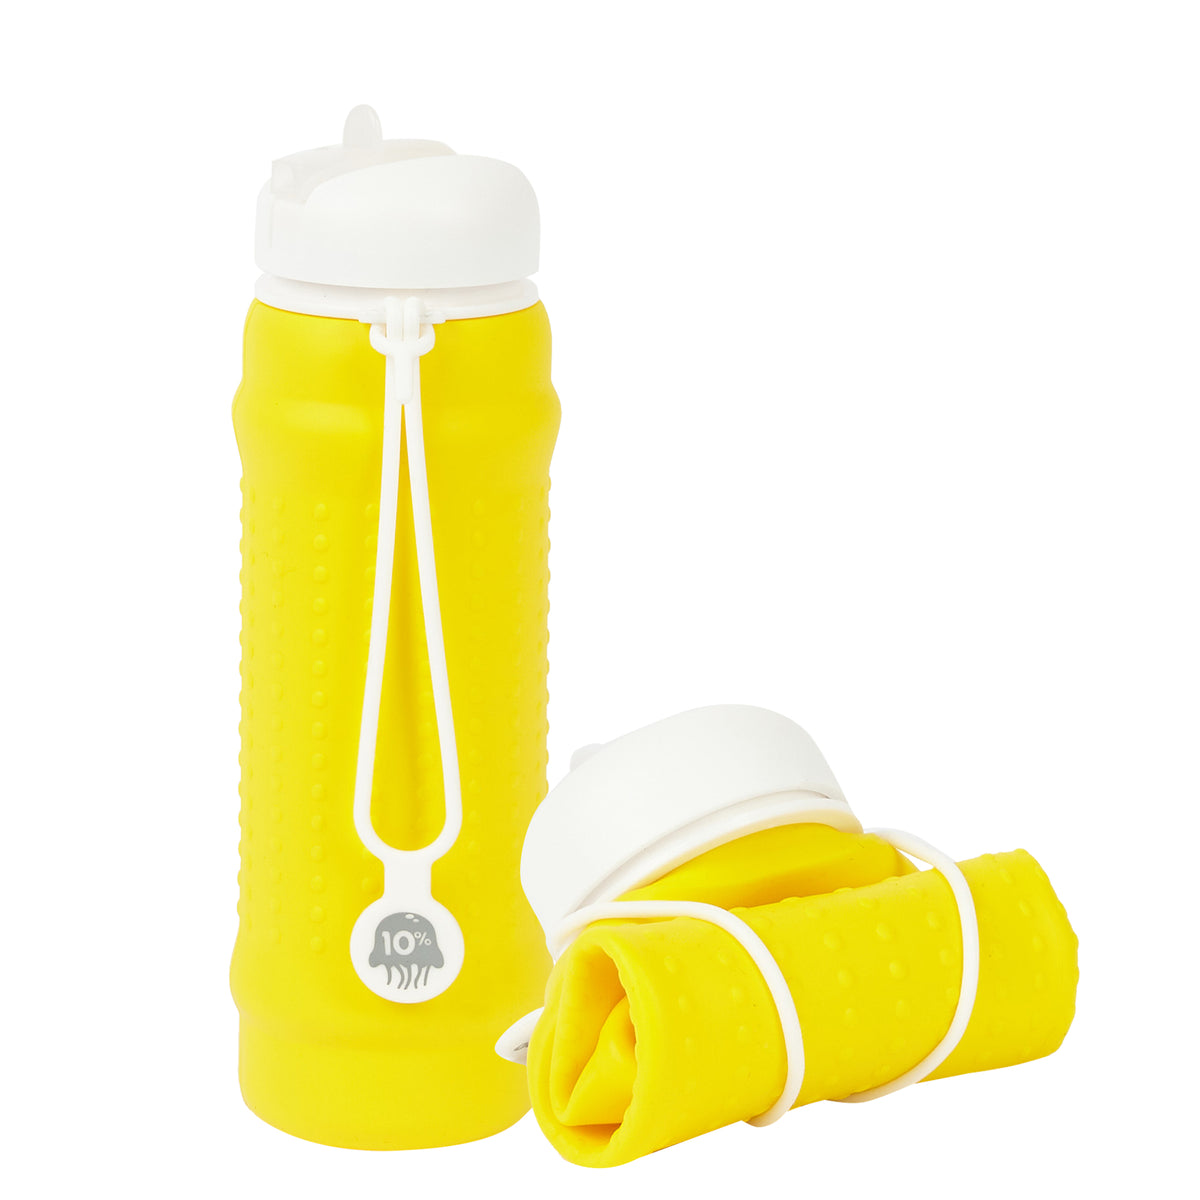 Rolla Bottle - Yellow, White Lid + White Strap - tall and rolled